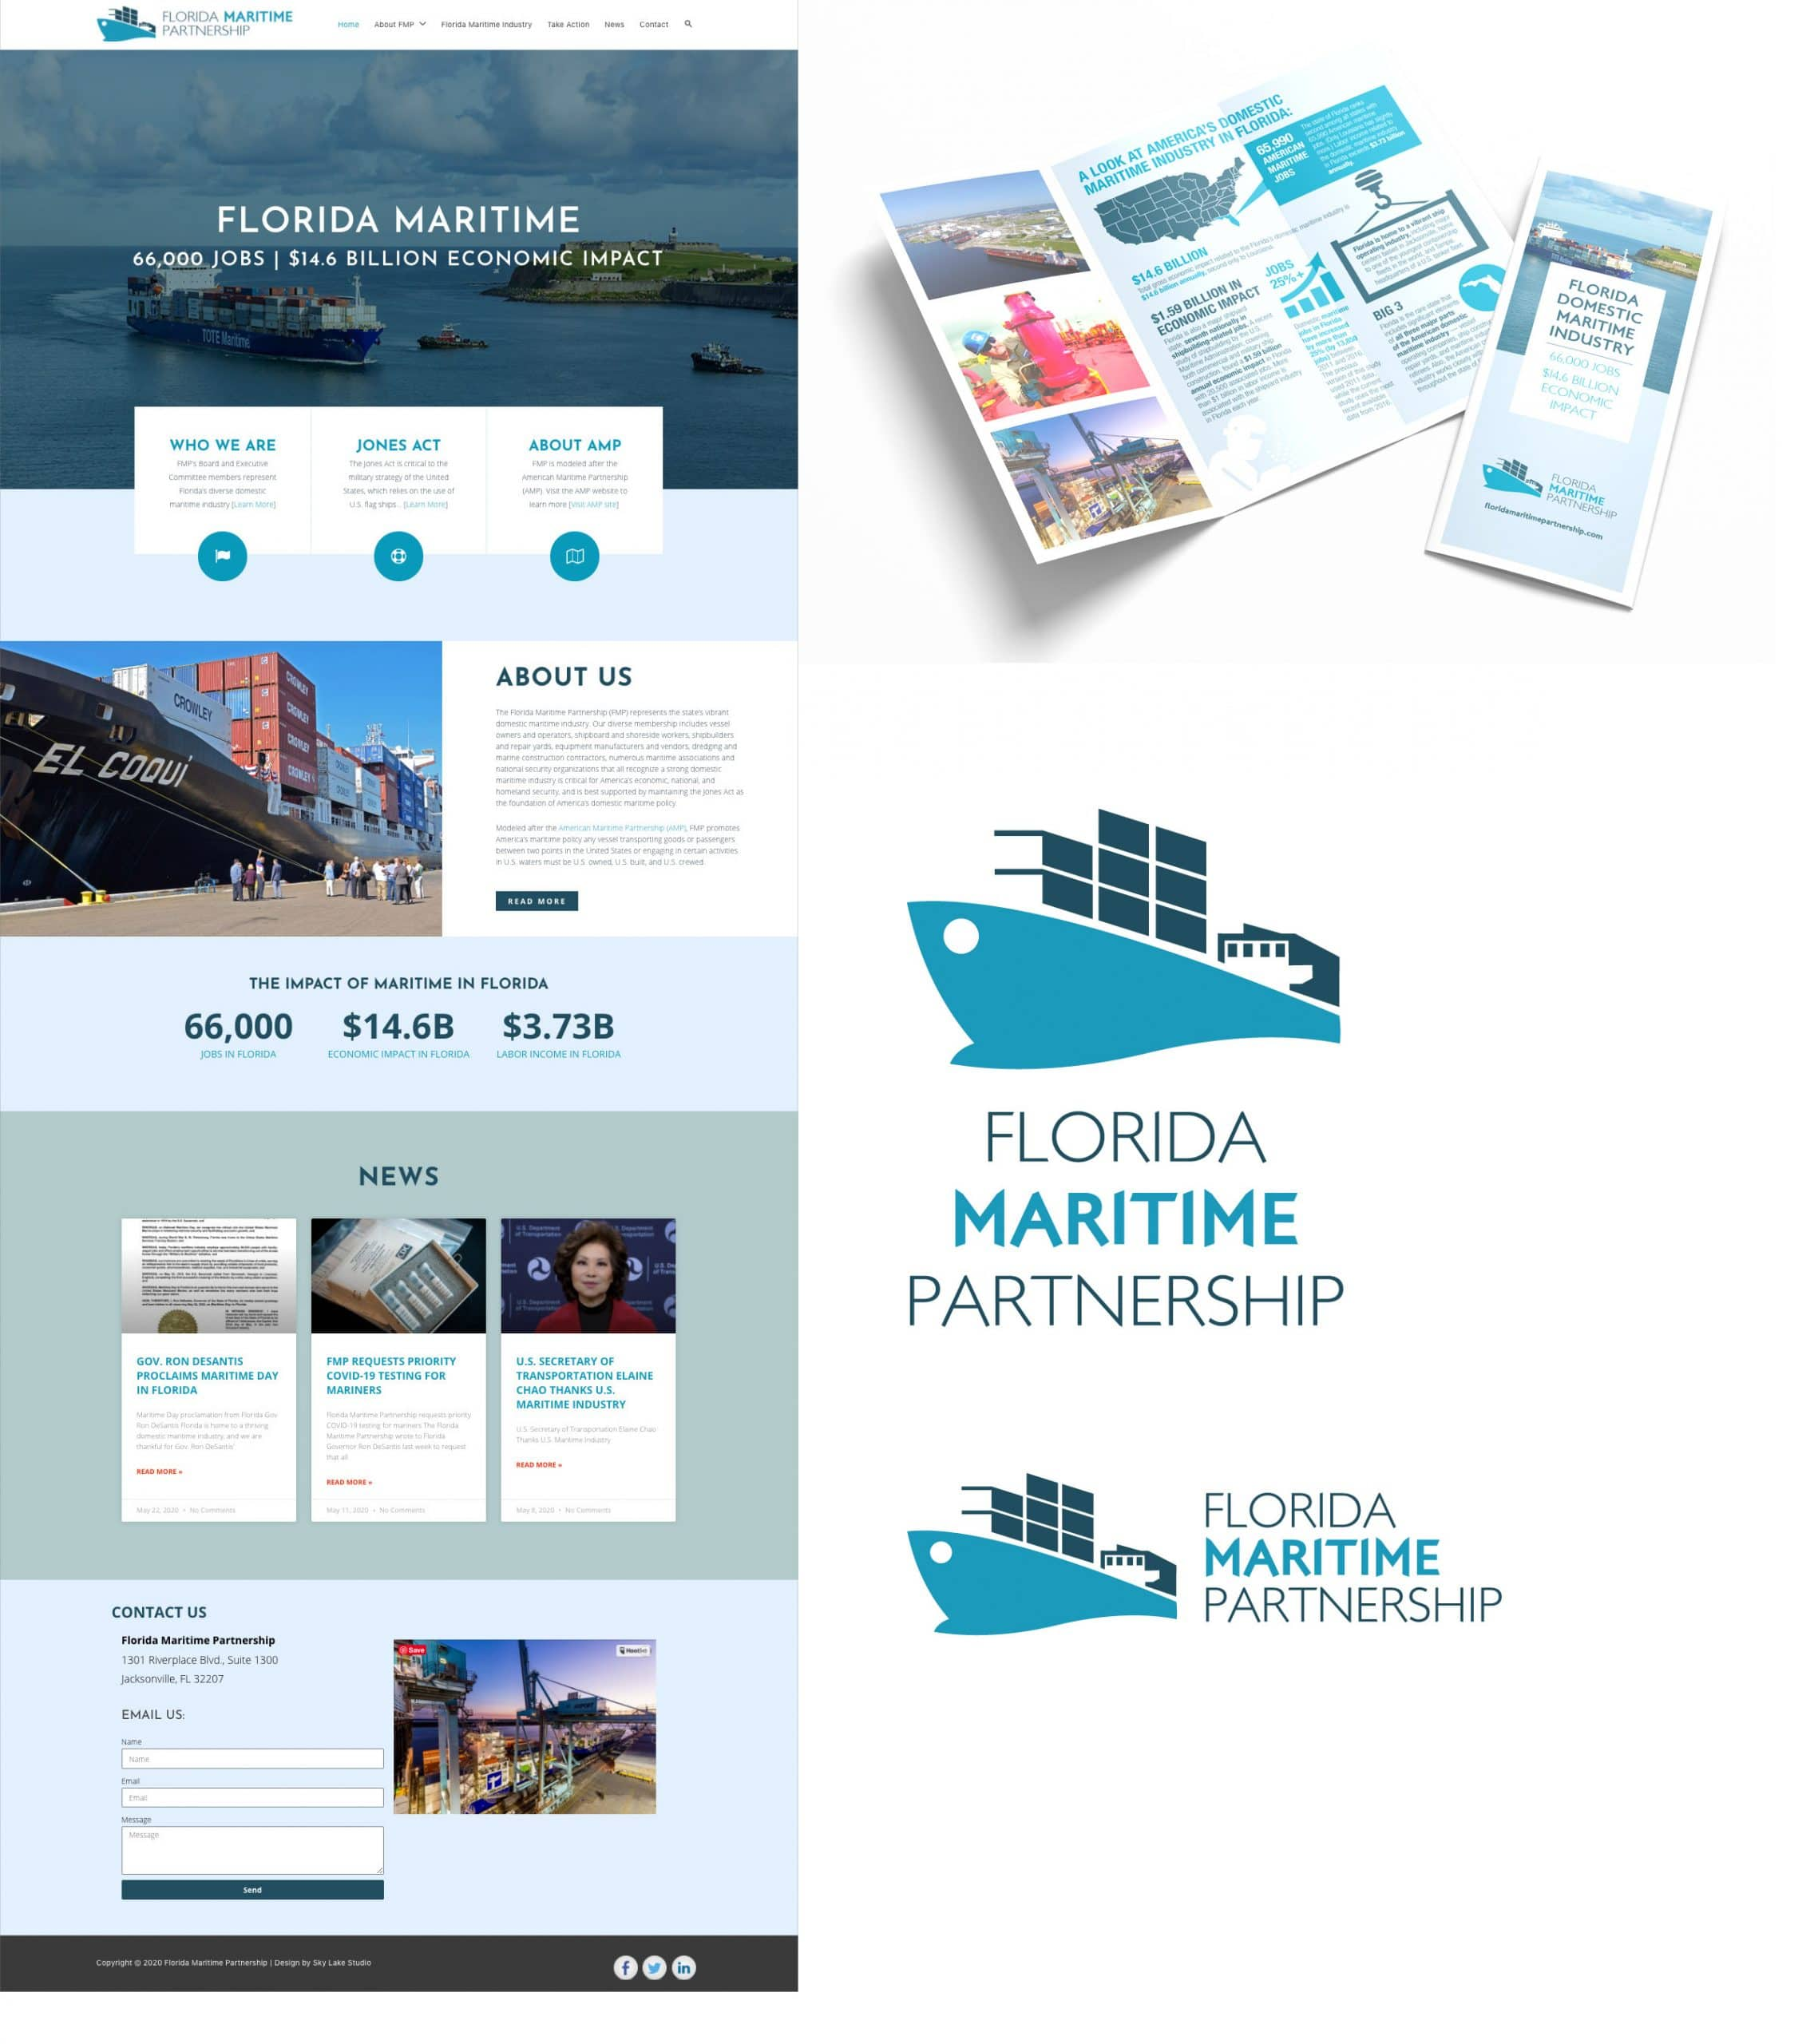 Florida Maritime Partnership design work